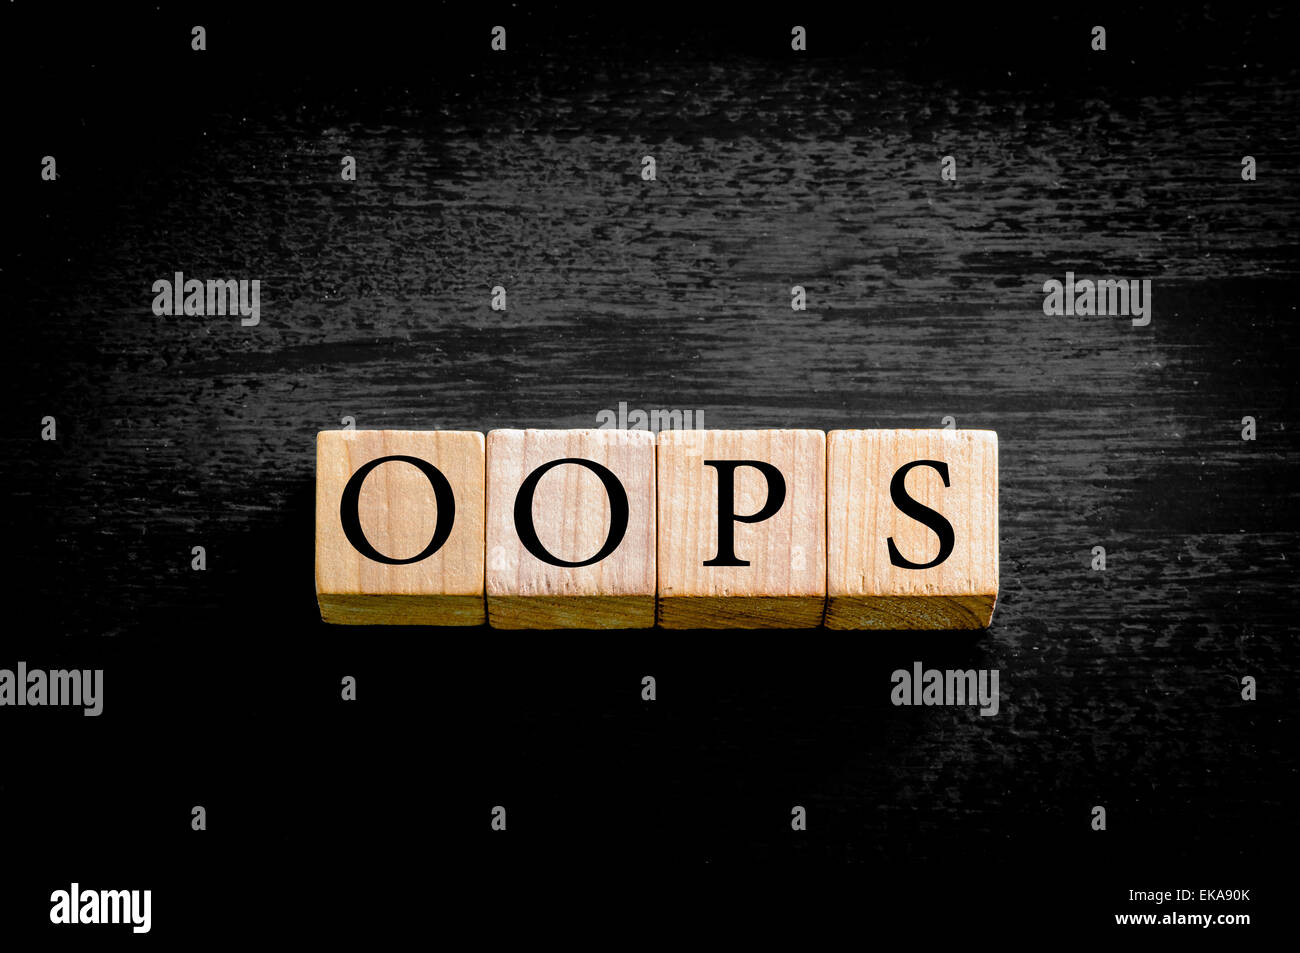 Word OOPS. Wooden small cubes with letters isolated on black background with copy space available. Concept image. - Stock Image